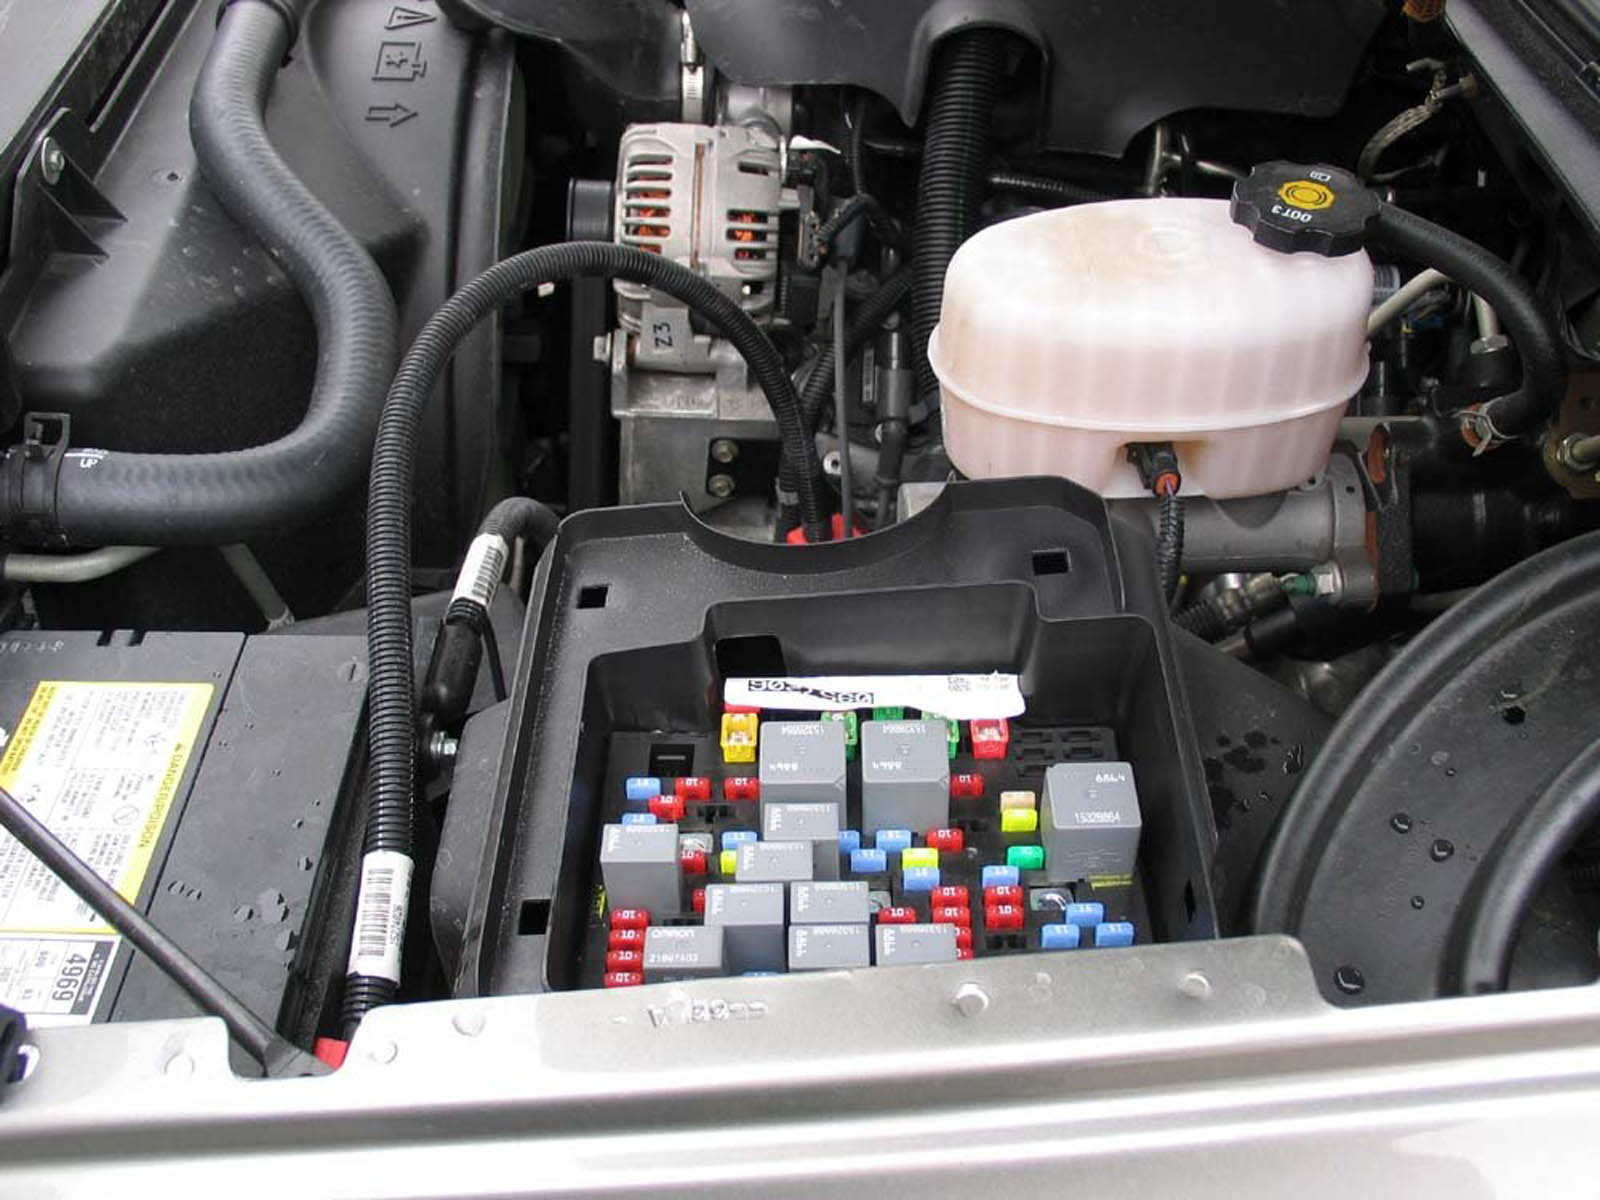 2011 equinox engine diagram with Chevrolet Silverado 1999 2006 Fuse Box Diagram 389377 on LS besides 2013 Chevrolet Equinox Ltz 3 6 additionally 331036934326 likewise Pcv Valve Location Chevy Aveo besides 2007 Toyota Tundra Ecu Location.